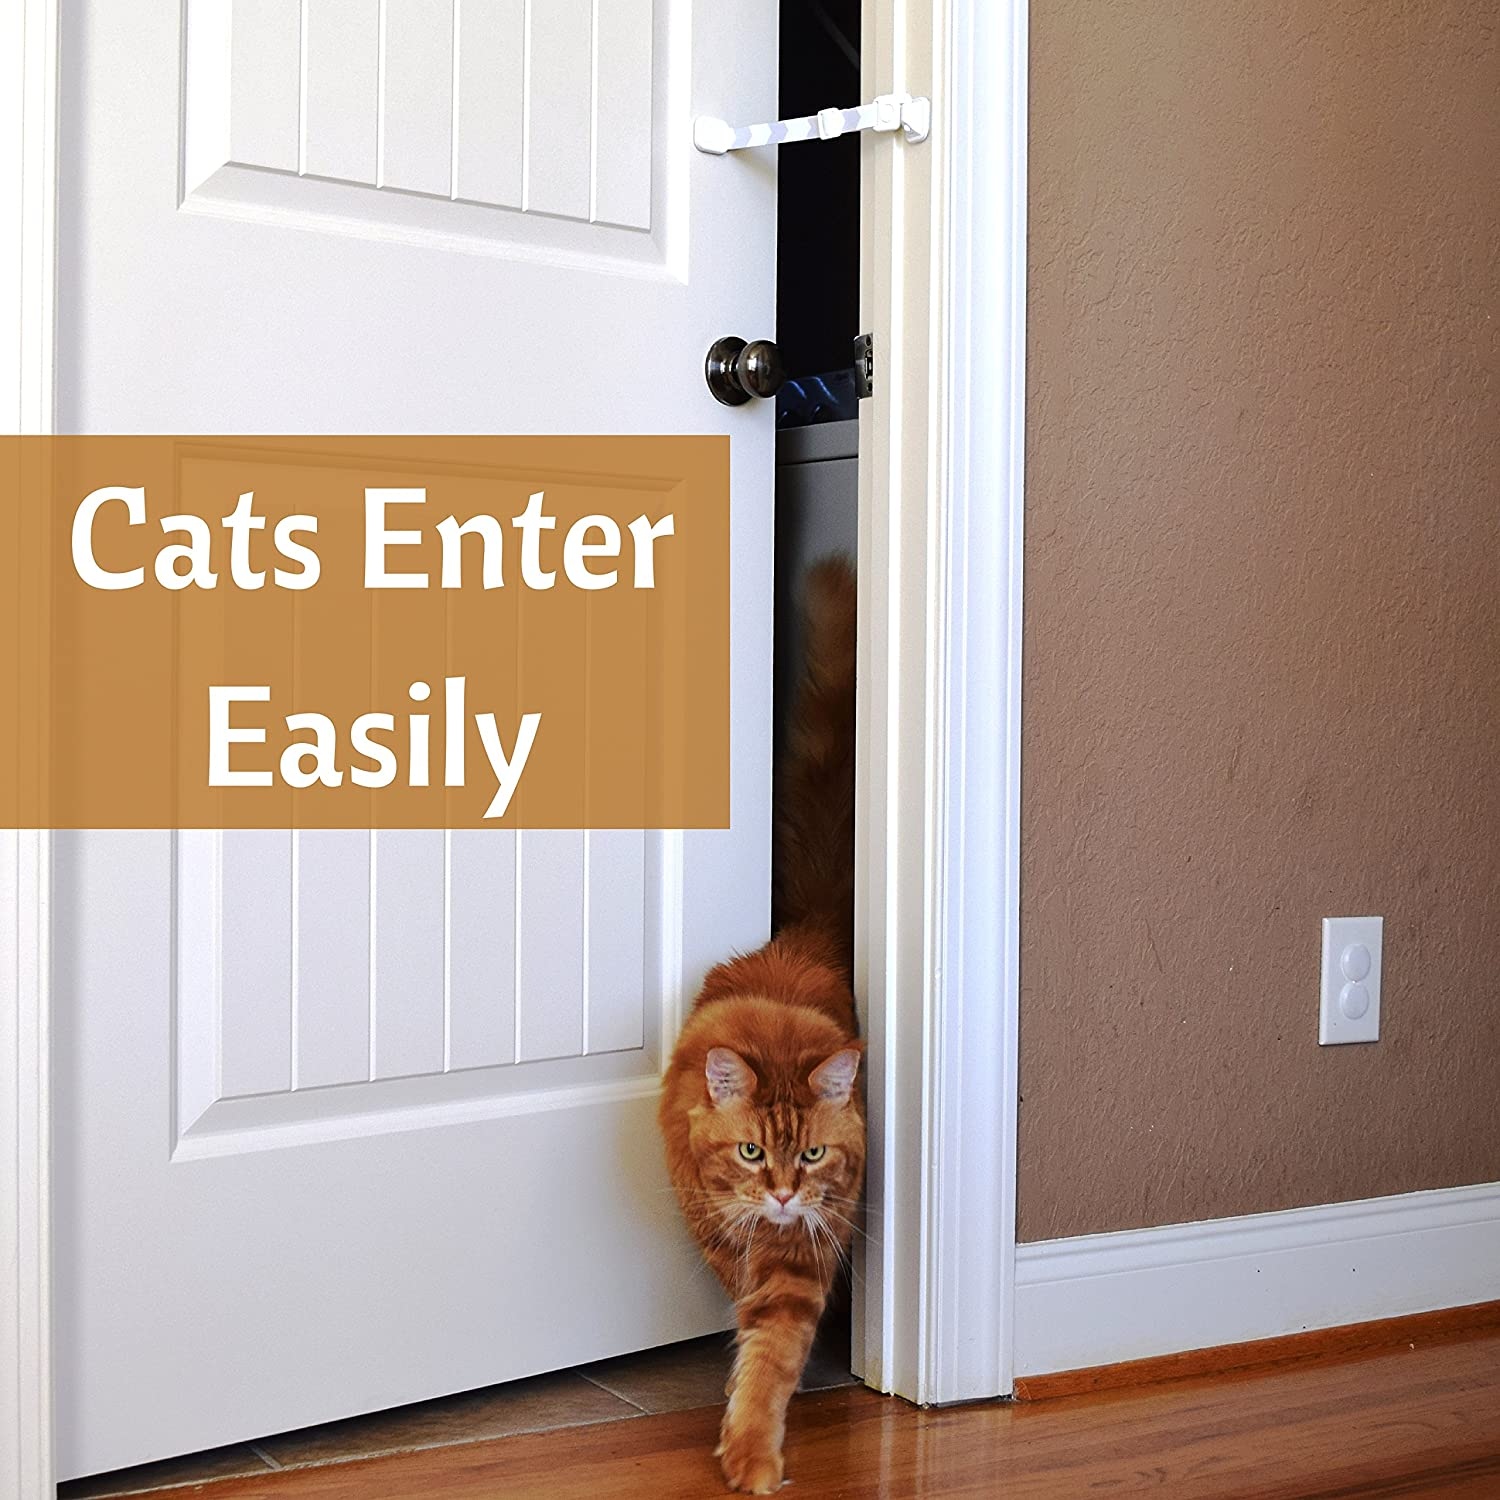 Amazon.com : Door Buddy Baby Proof Door Lock with Adjustable Strap. No Need for Baby Gate. Child Proof Room with Litter Box while Cats Enter Easily. & Amazon.com : Door Buddy Baby Proof Door Lock with Adjustable Strap ... Pezcame.Com